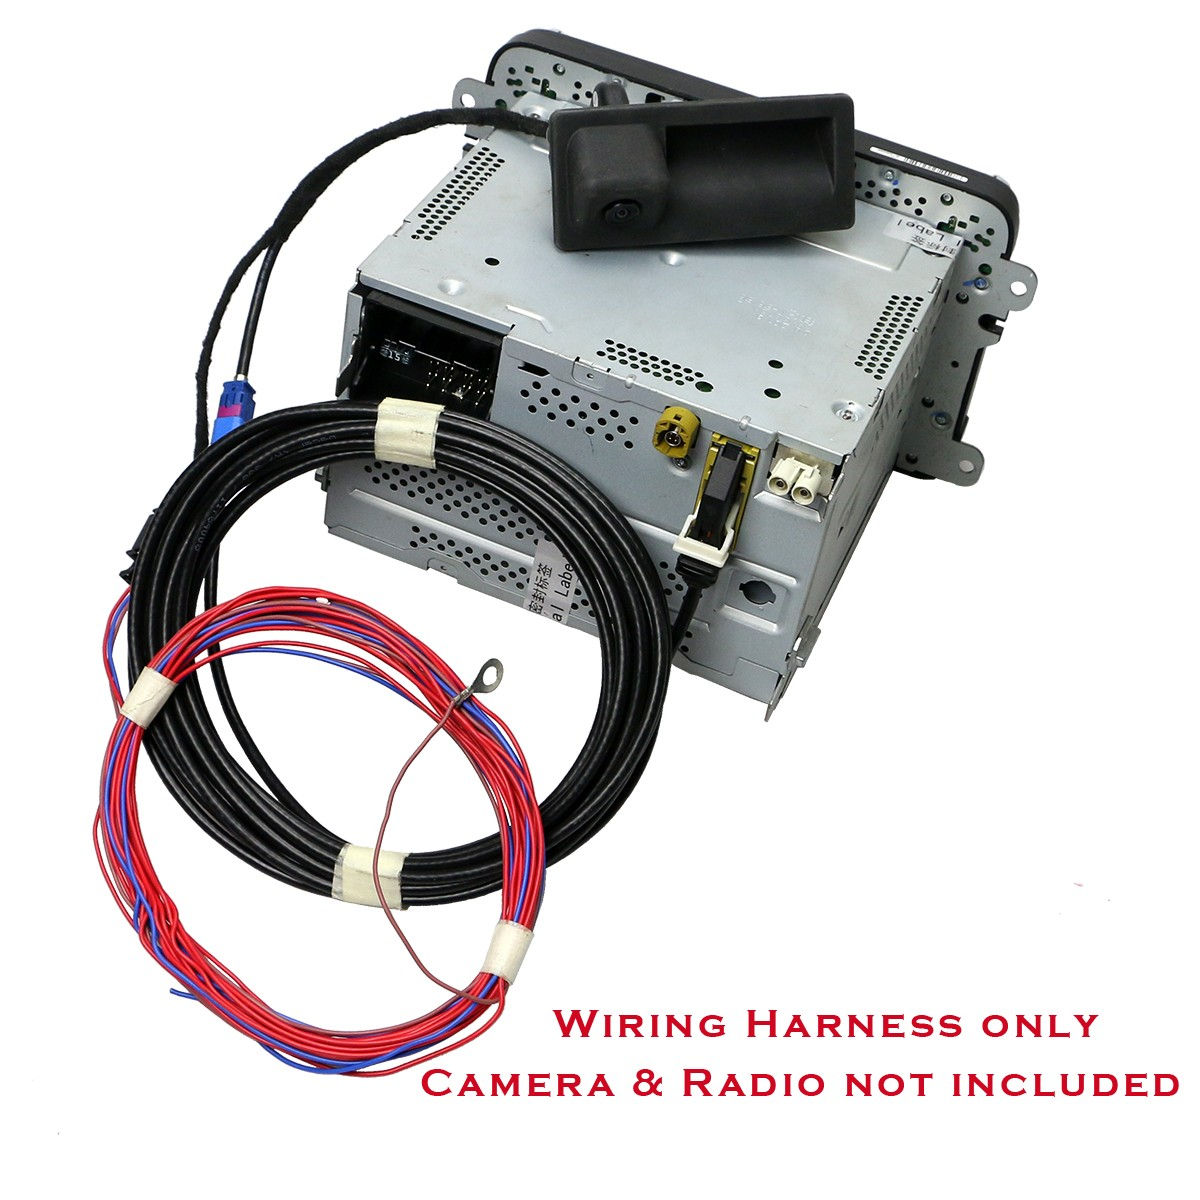 Oem Wiring Harness For Rgb Rear View Camera Fit Rcd510 No Machines India Backup And Vw Rns315 Rns510